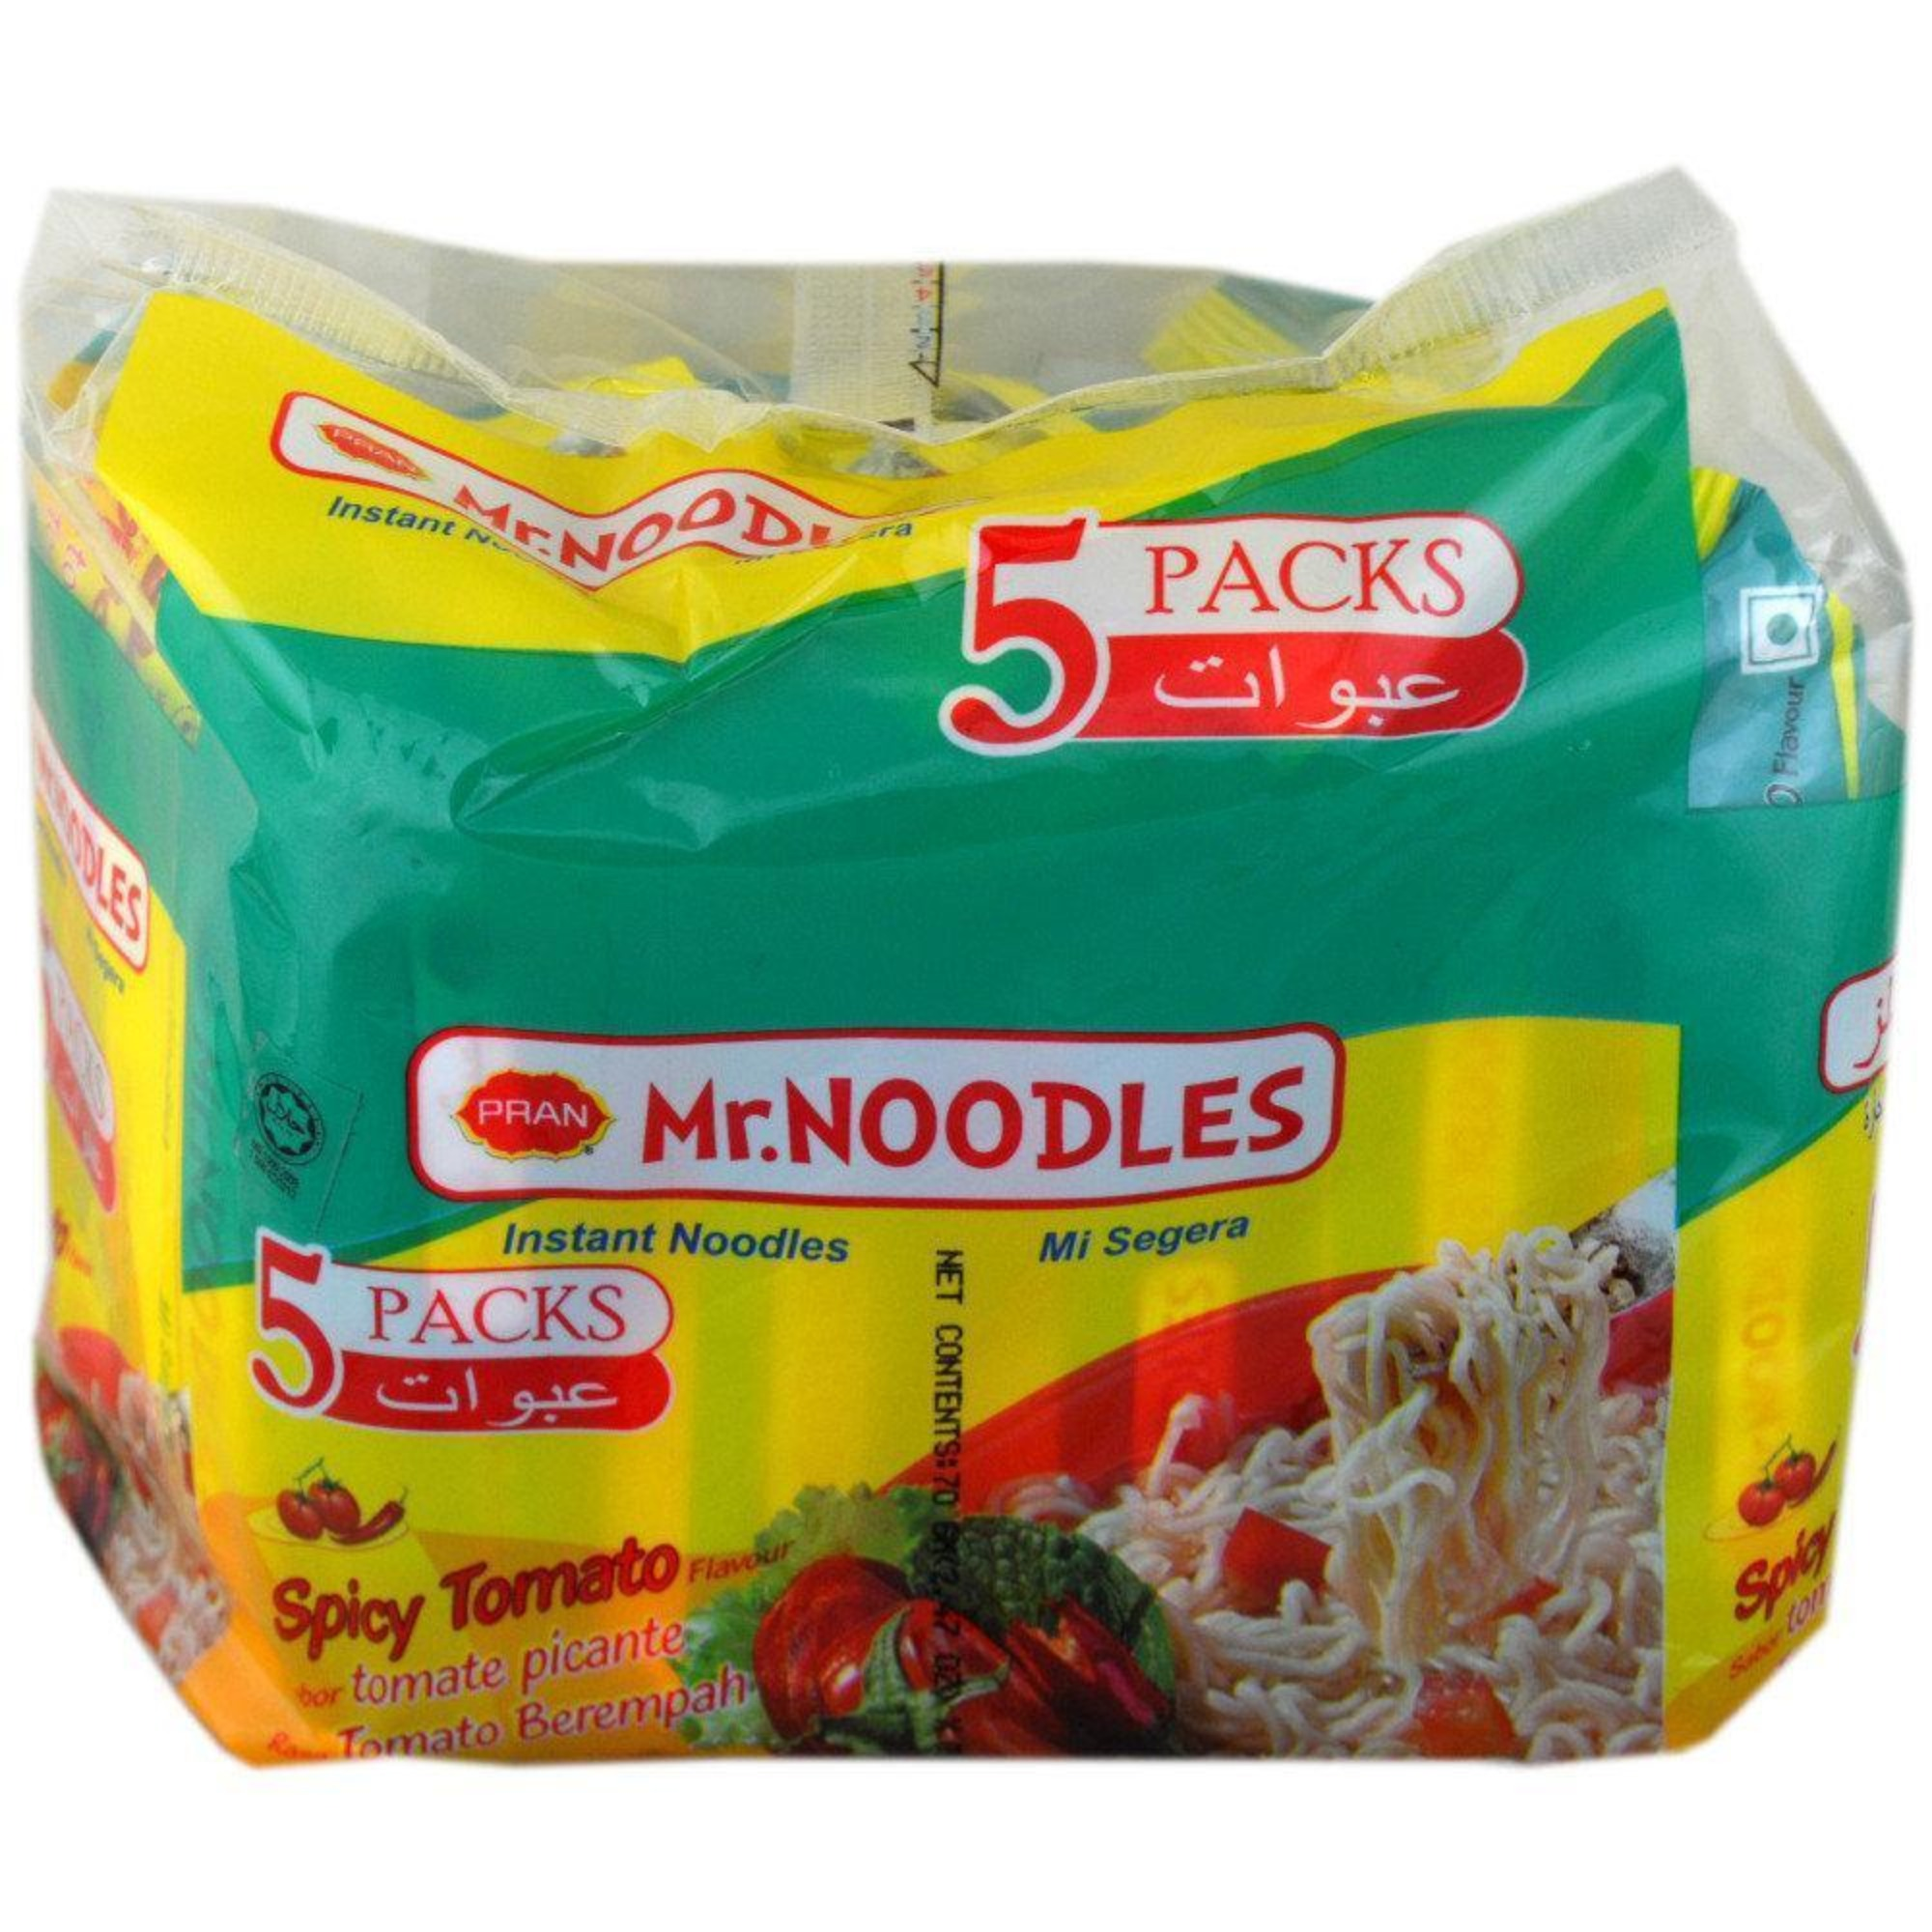 Spicy Tomato Noodles - 1x5 packs